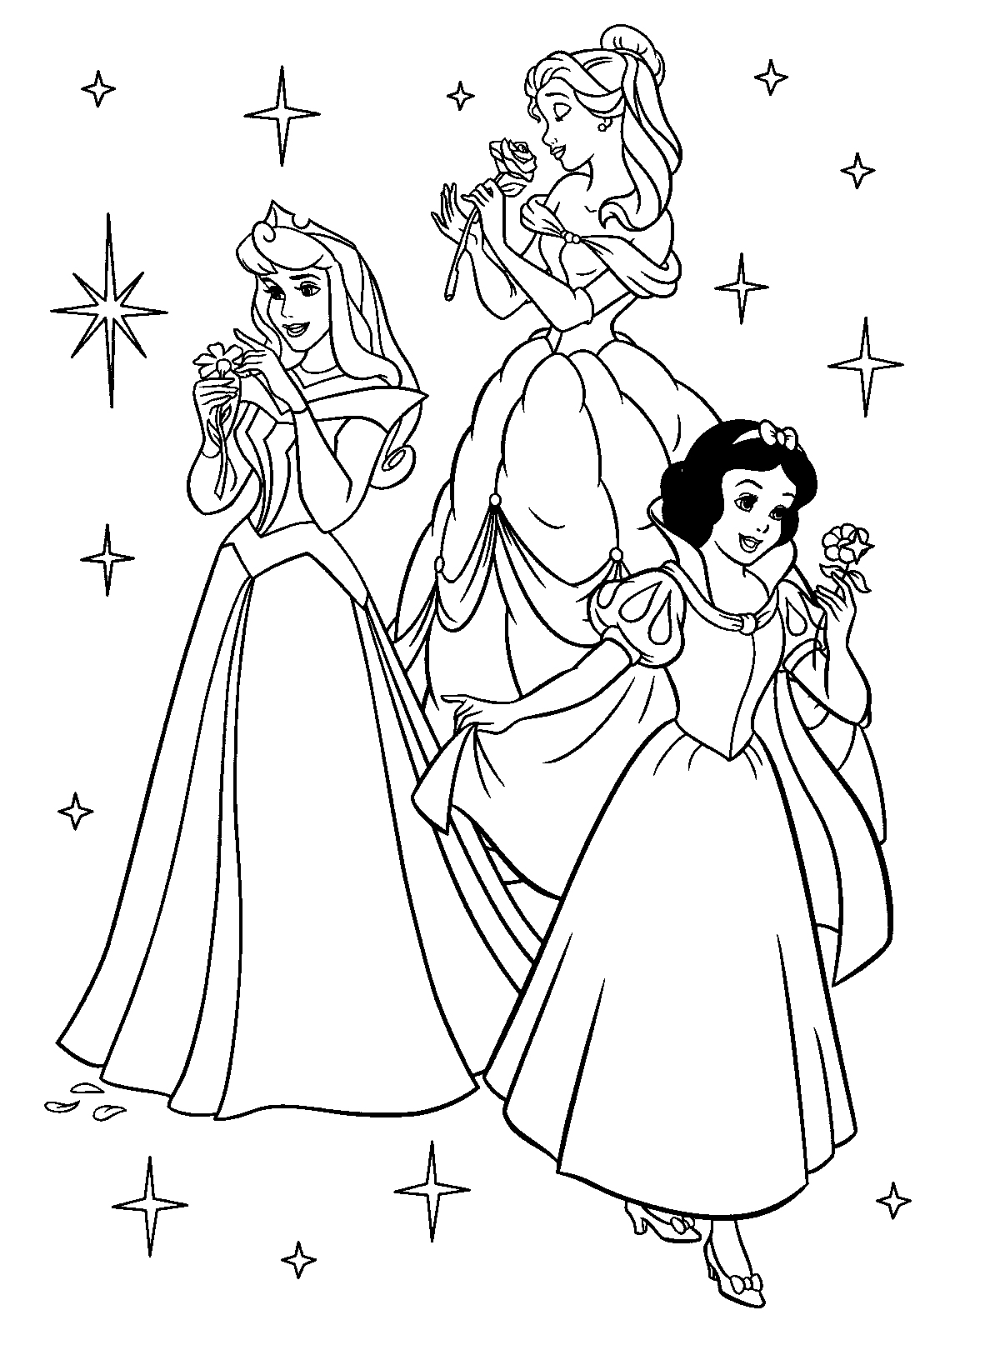 Free Printable Disney Princess Coloring Pages For Kids Princess Coloring Pages Princess Coloring Princess Coloring Sheets